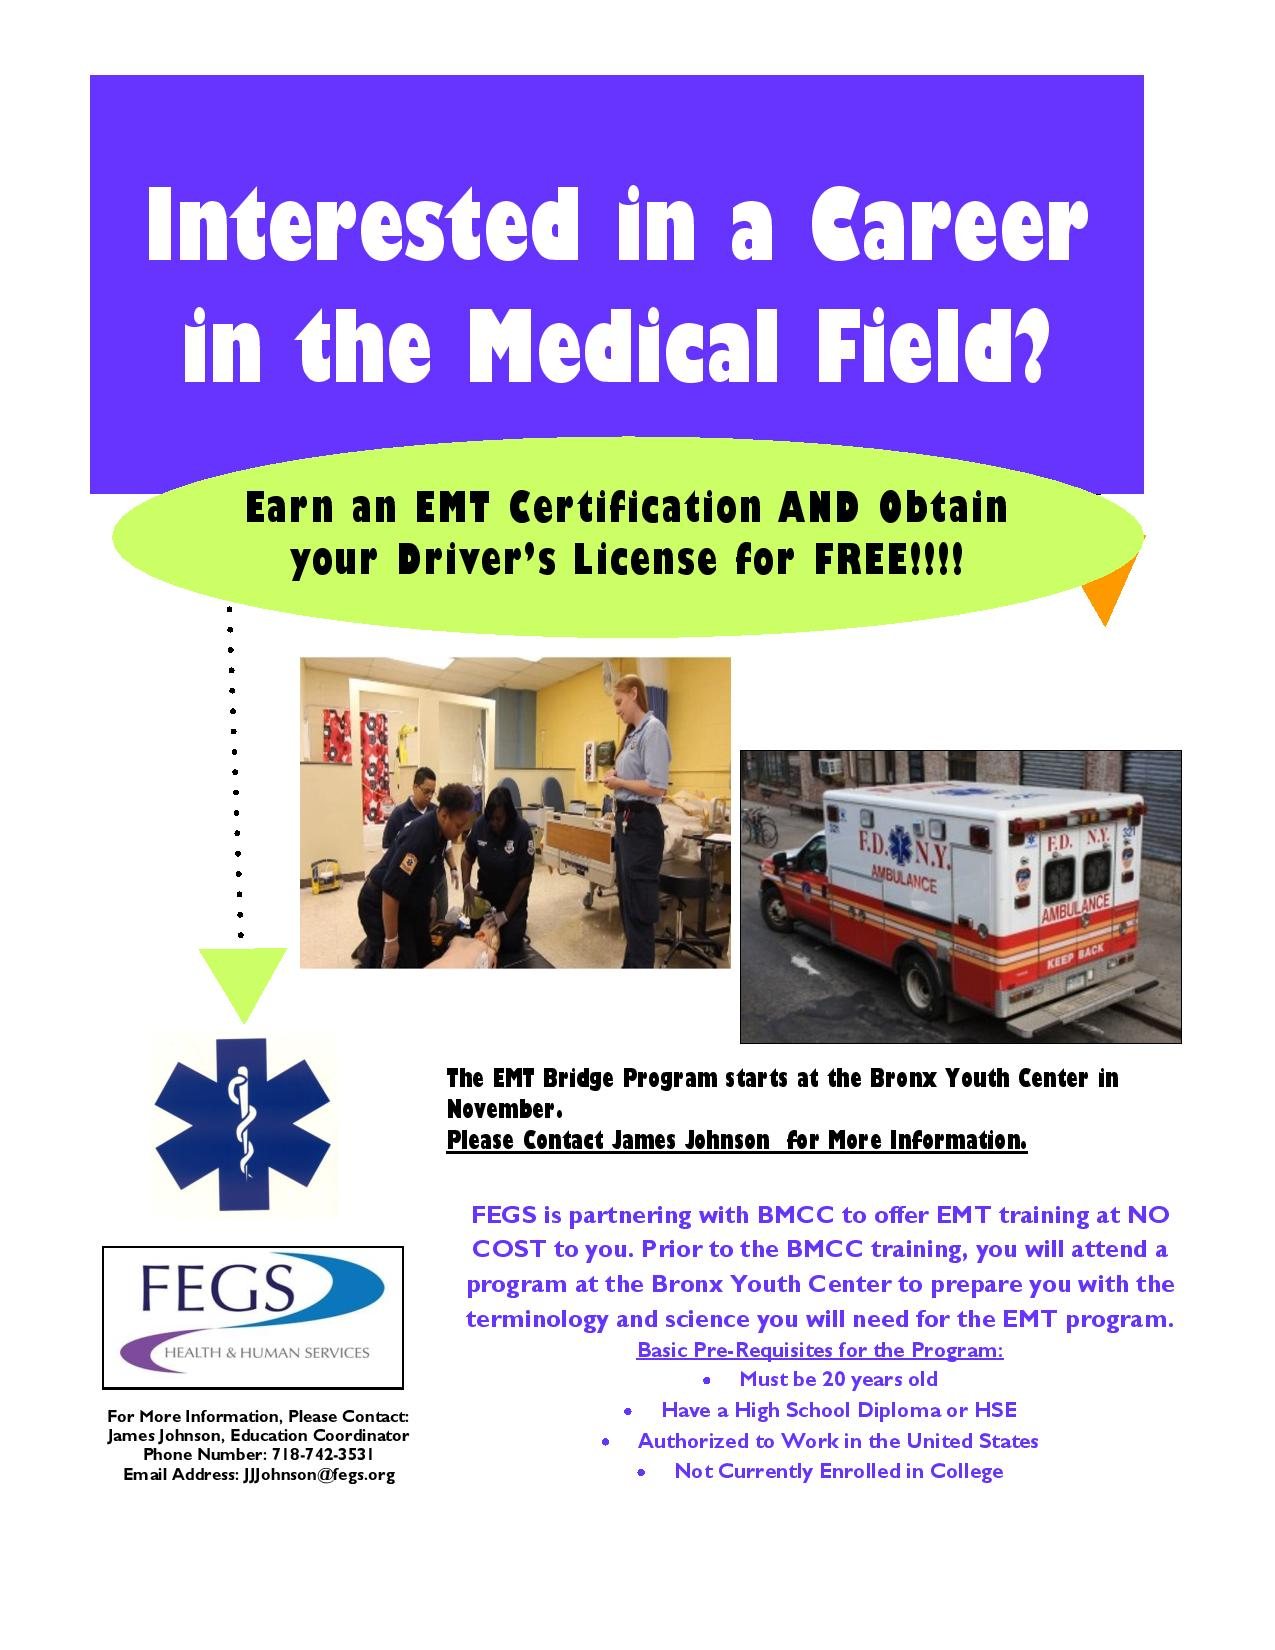 EMT Certification Program